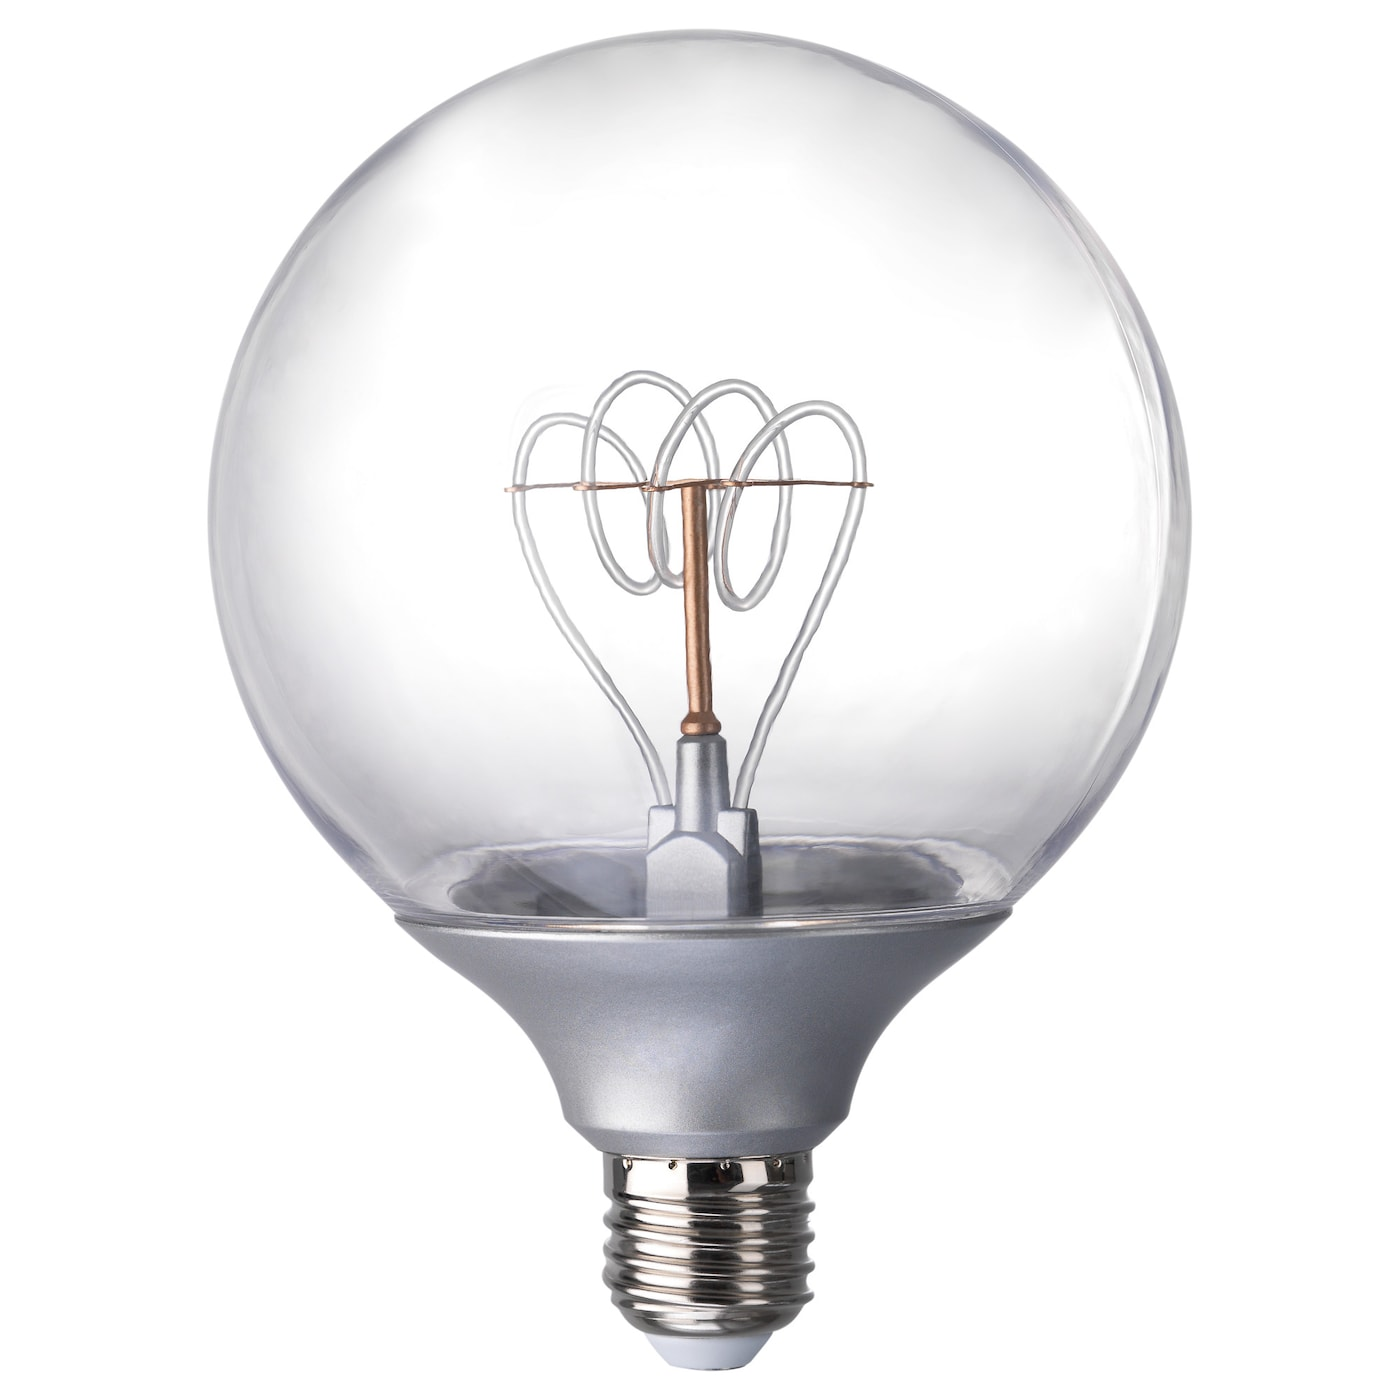 Light bulbs accessories ikea A light bulb